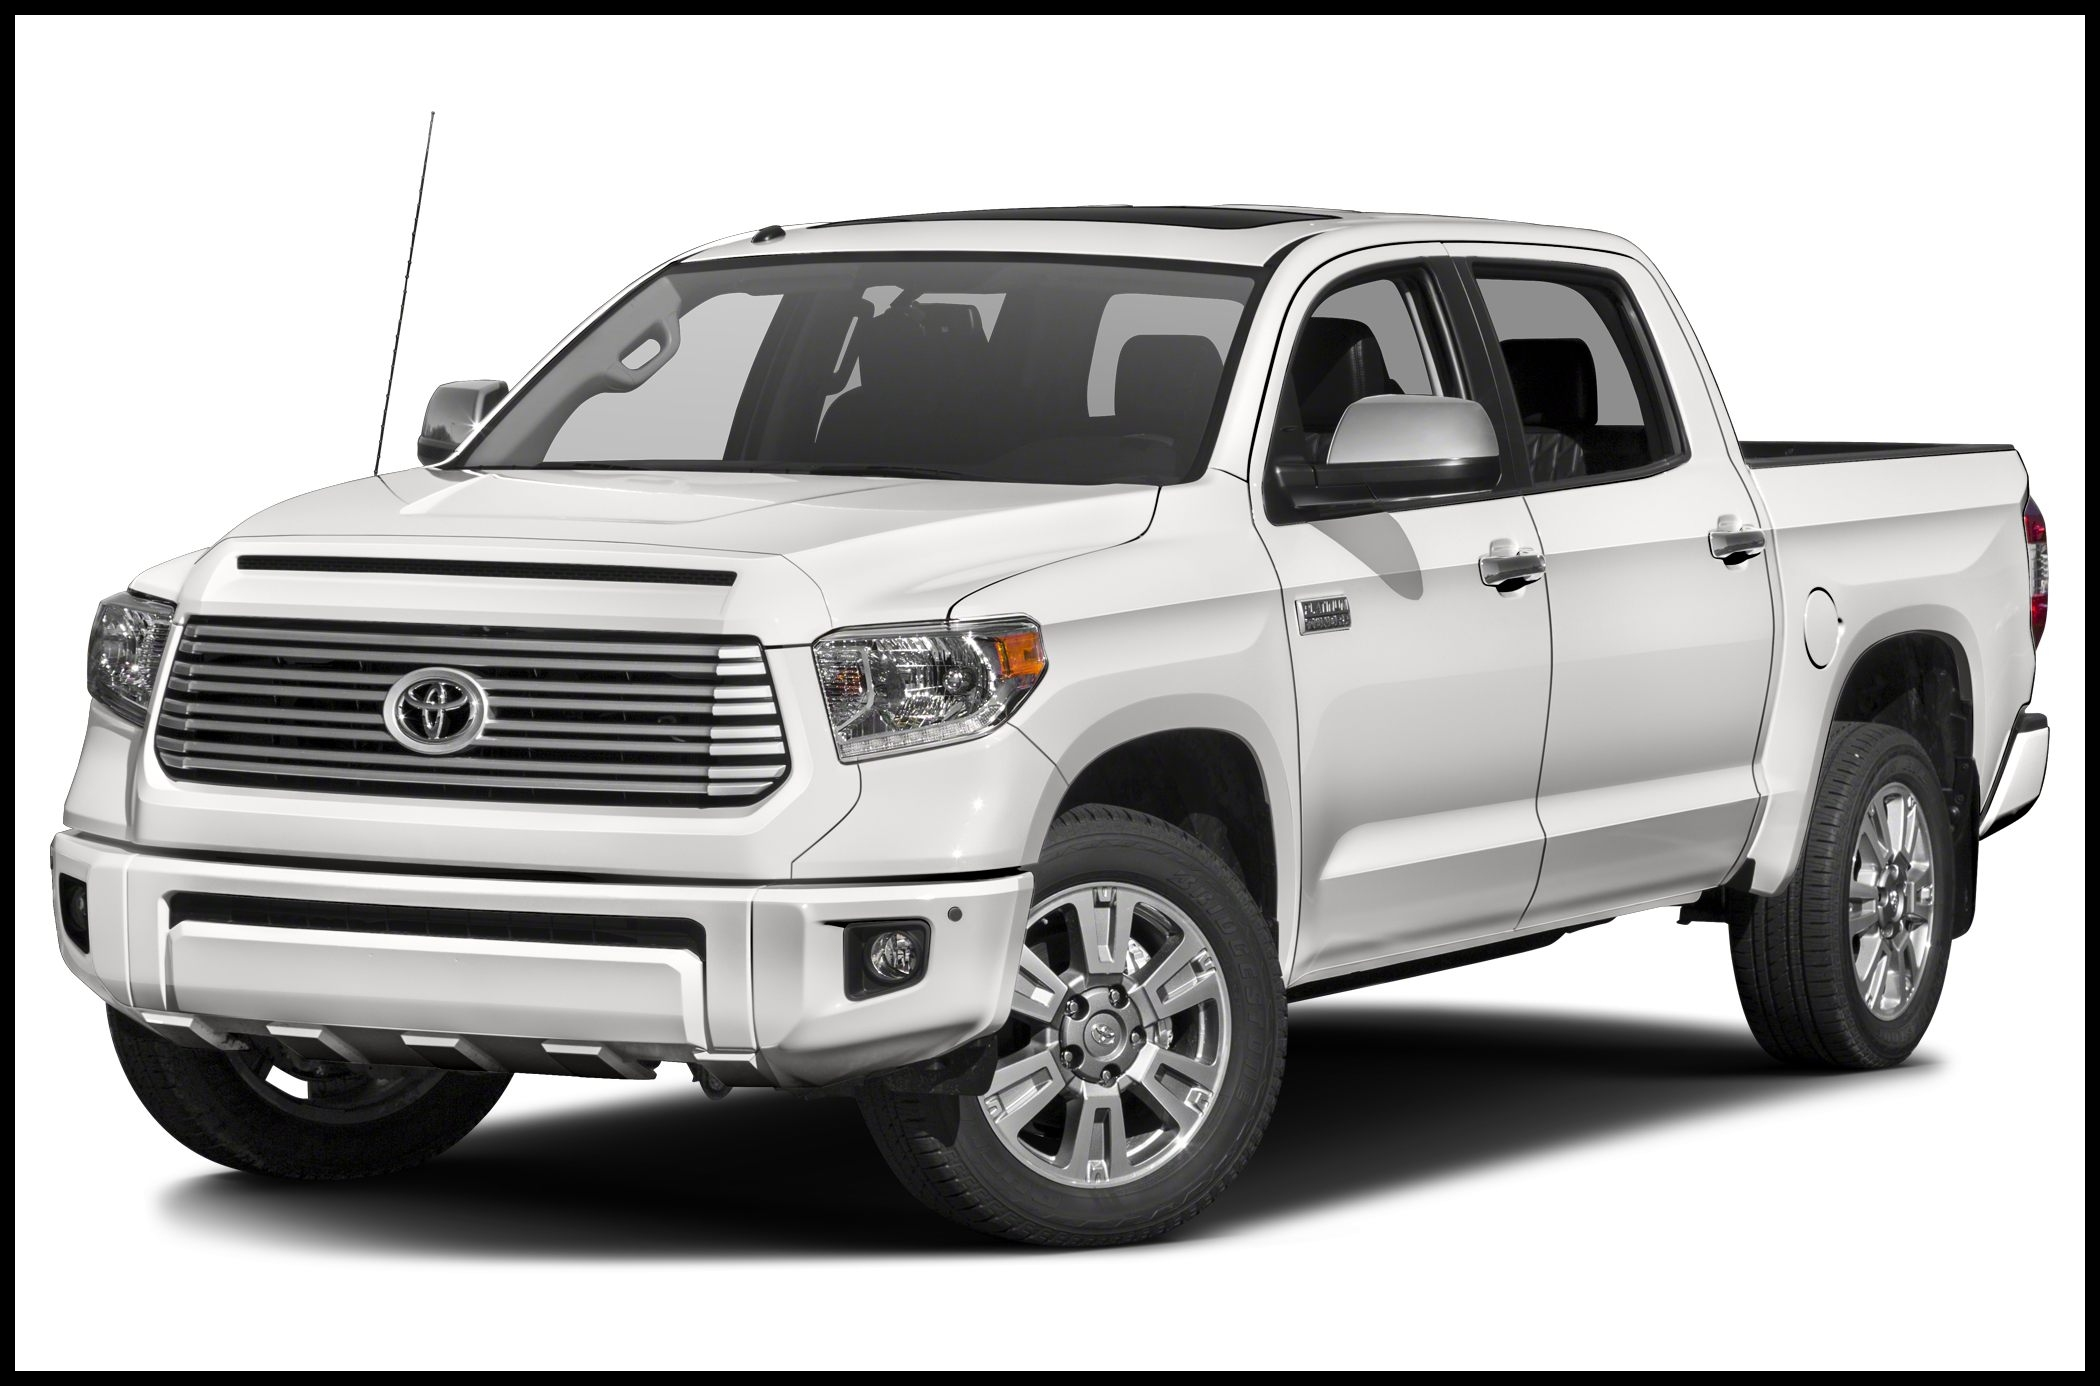 2016 Toyota Tundra Platinum 5 7L V8 4x2 CrewMax 5 6 ft box 145 7 in WB Specs and Prices